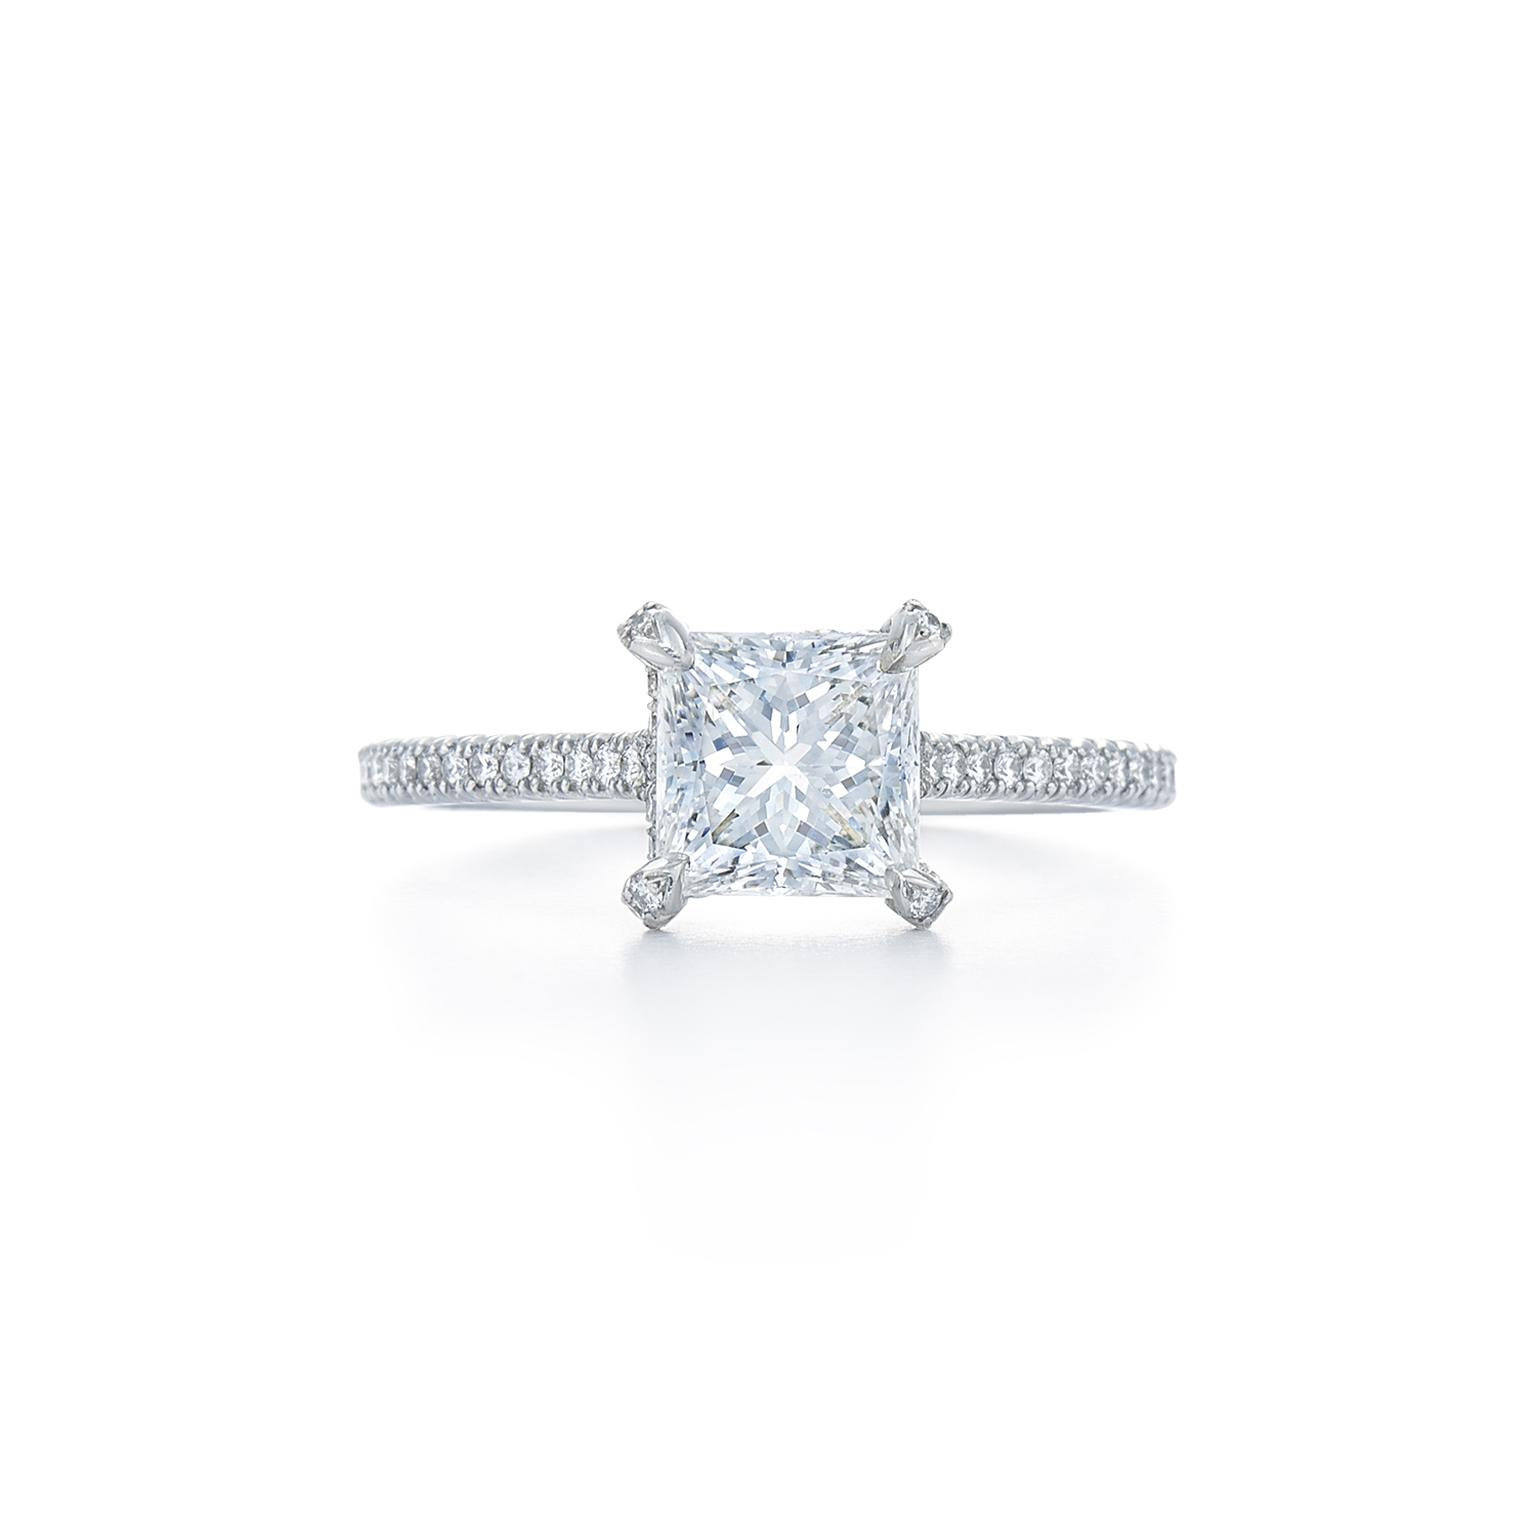 The romantic appeal of princess cut engagement rings